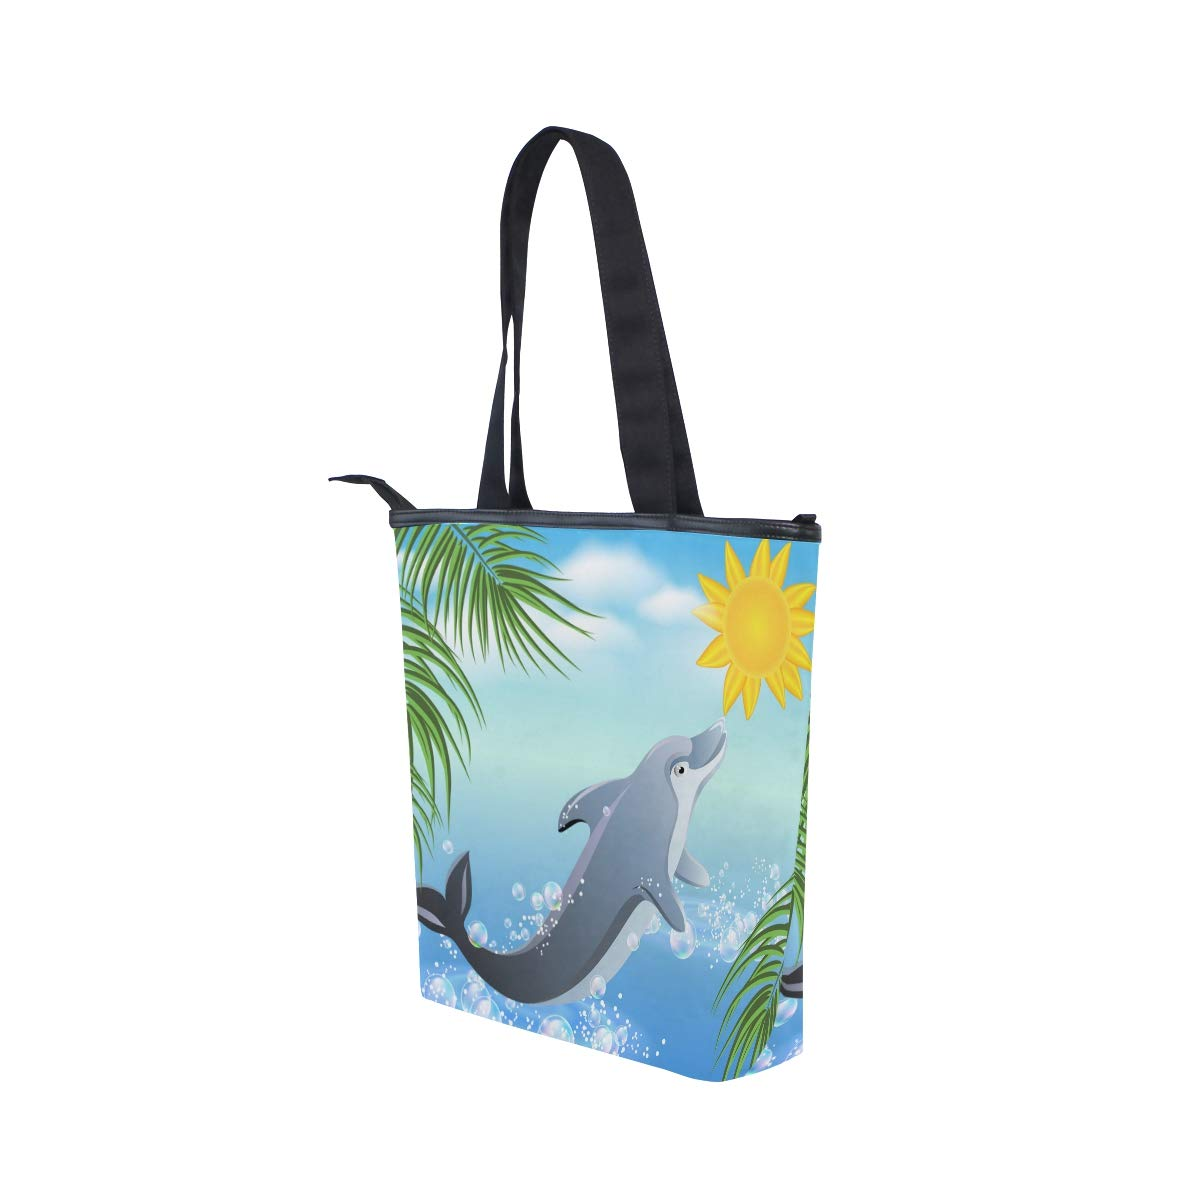 Shark Lady Handbag Tote Bag Zipper Shoulder Bag for Shopping Travel